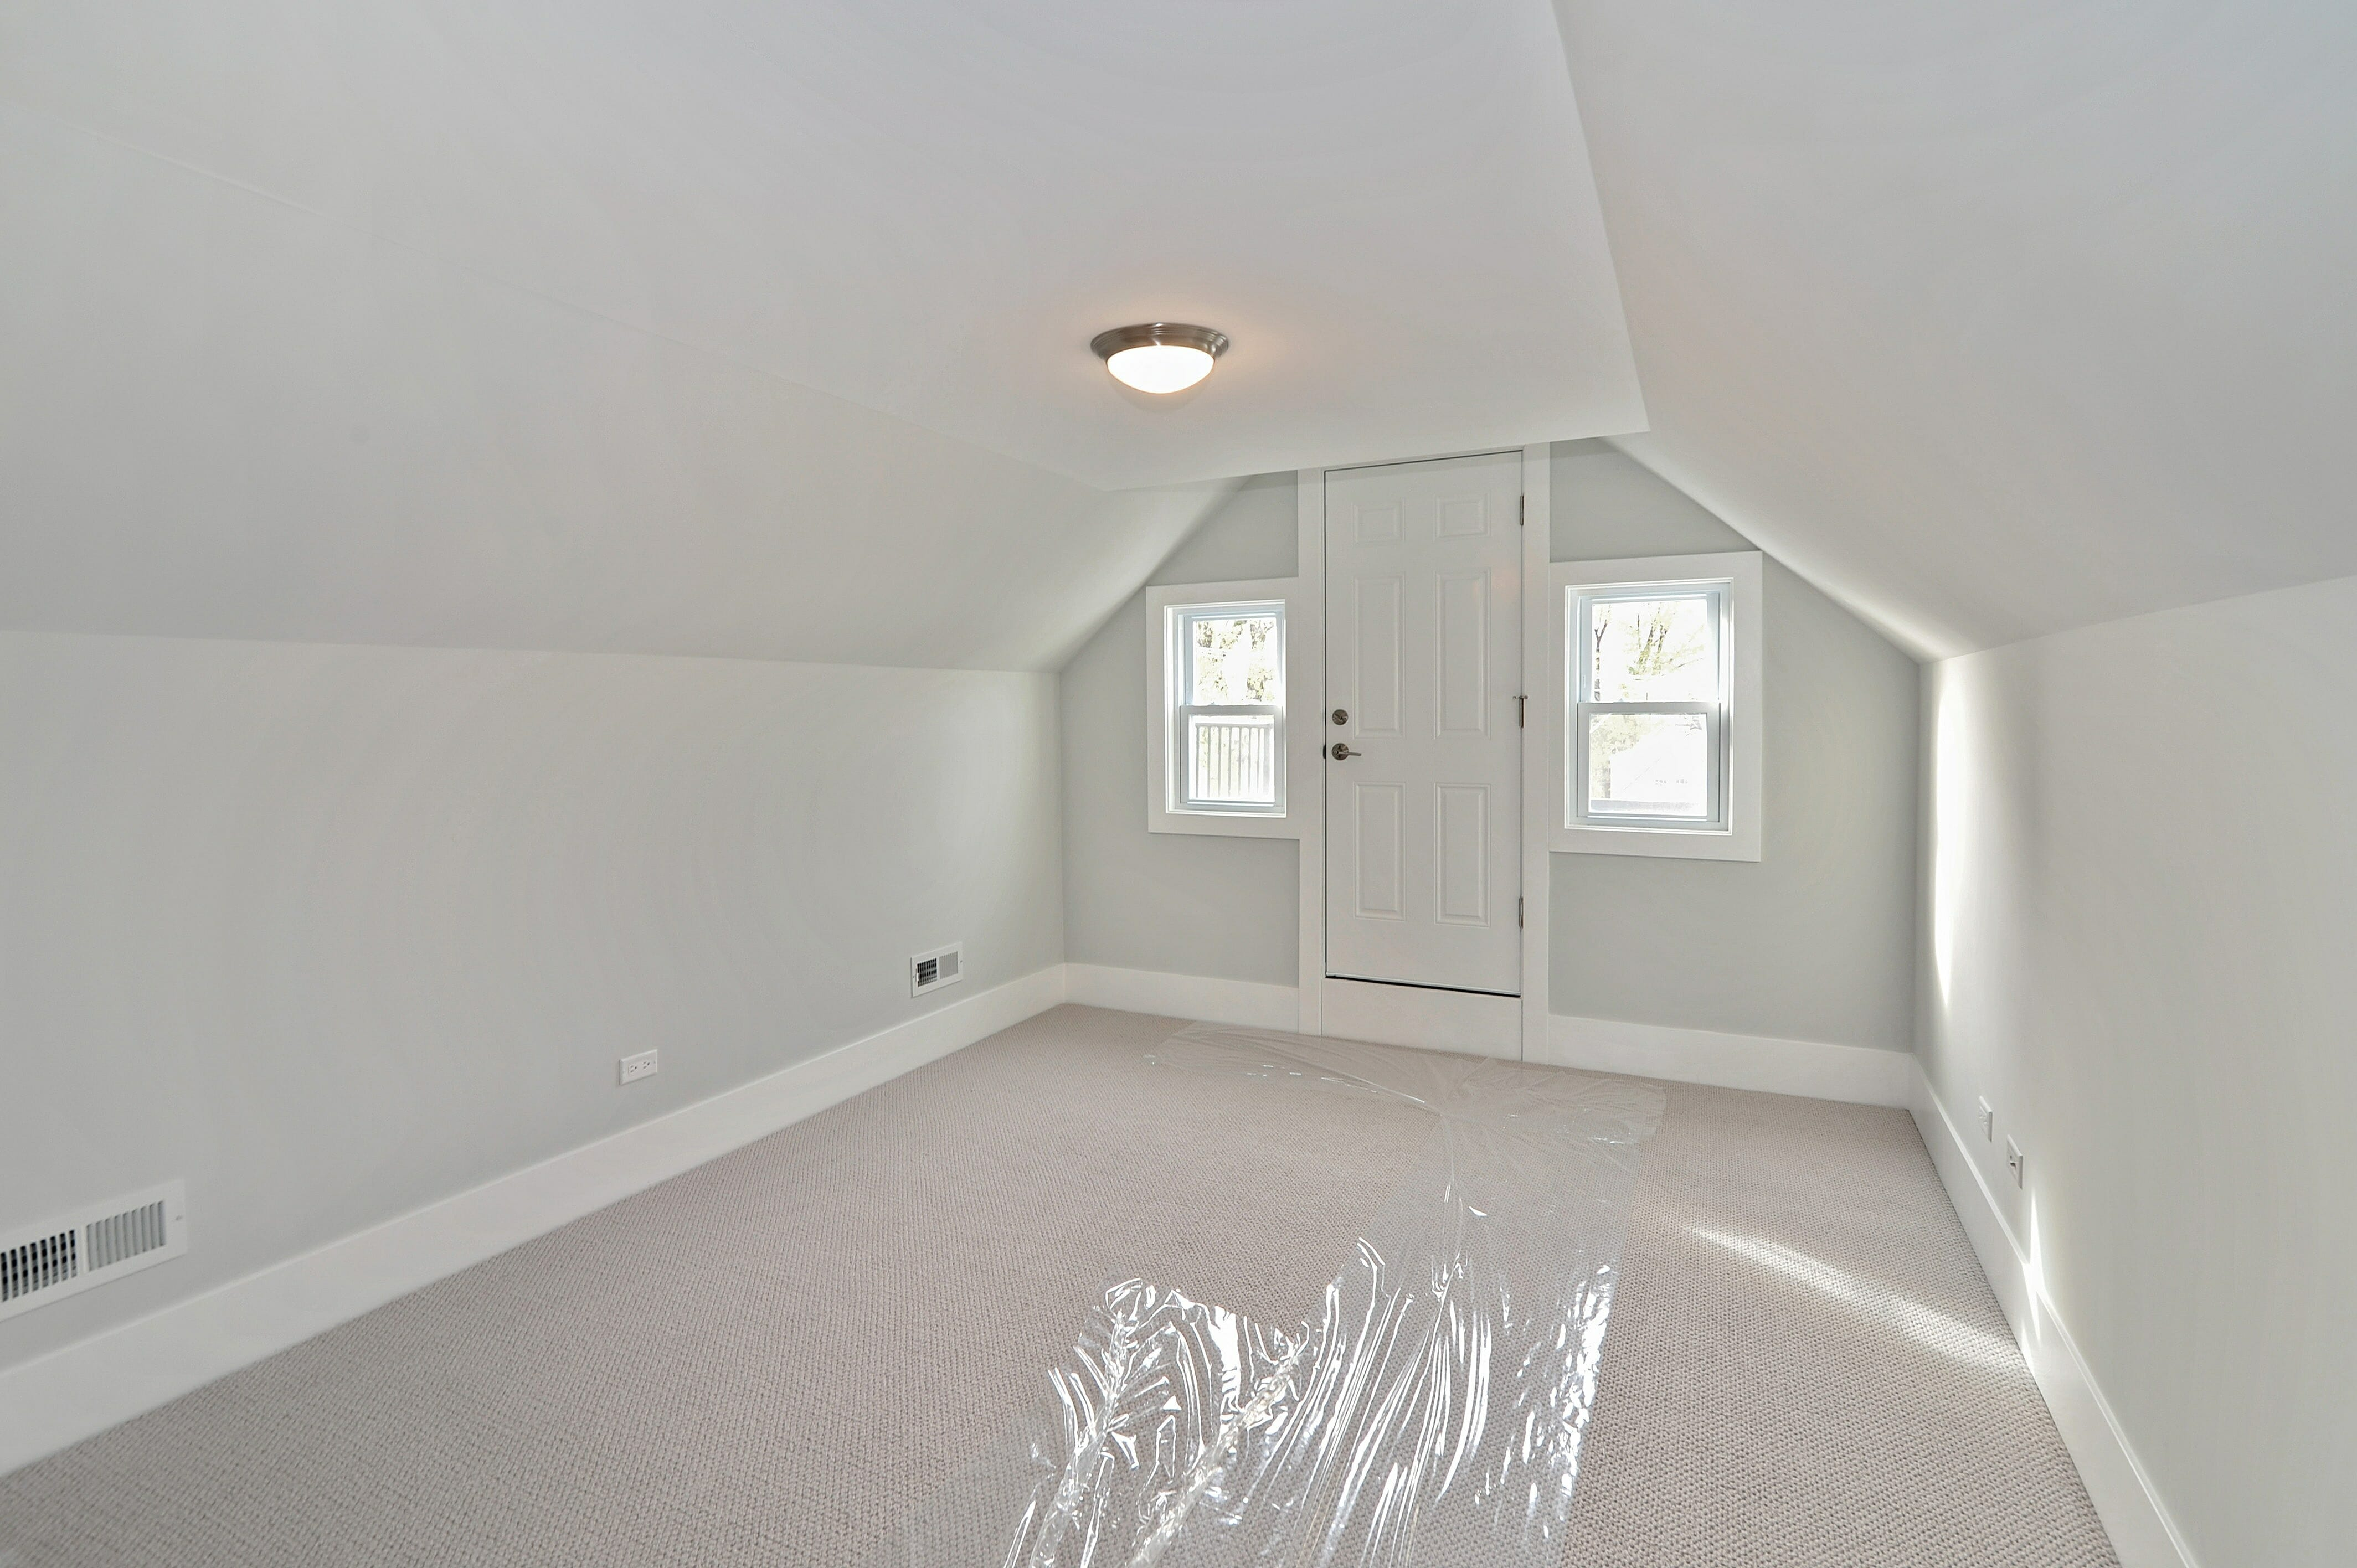 Gut renovated lofted attic with carpet and rear exit door